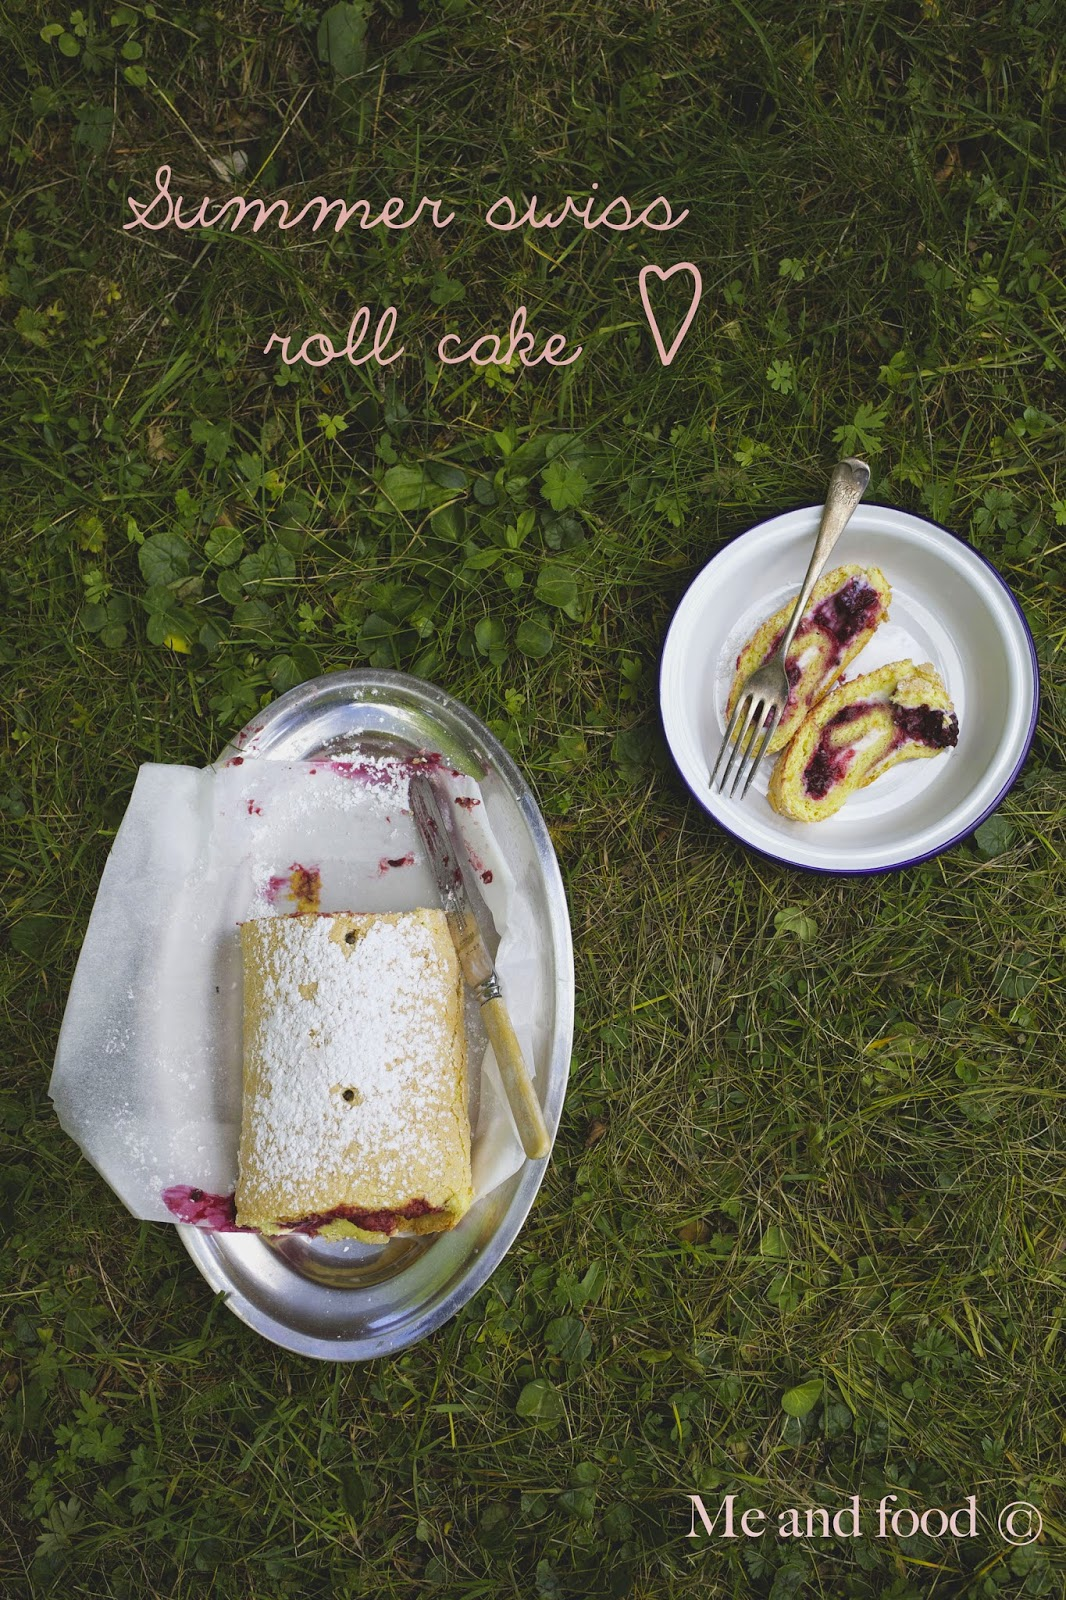 Me And Food Summer Swiss Roll Cake